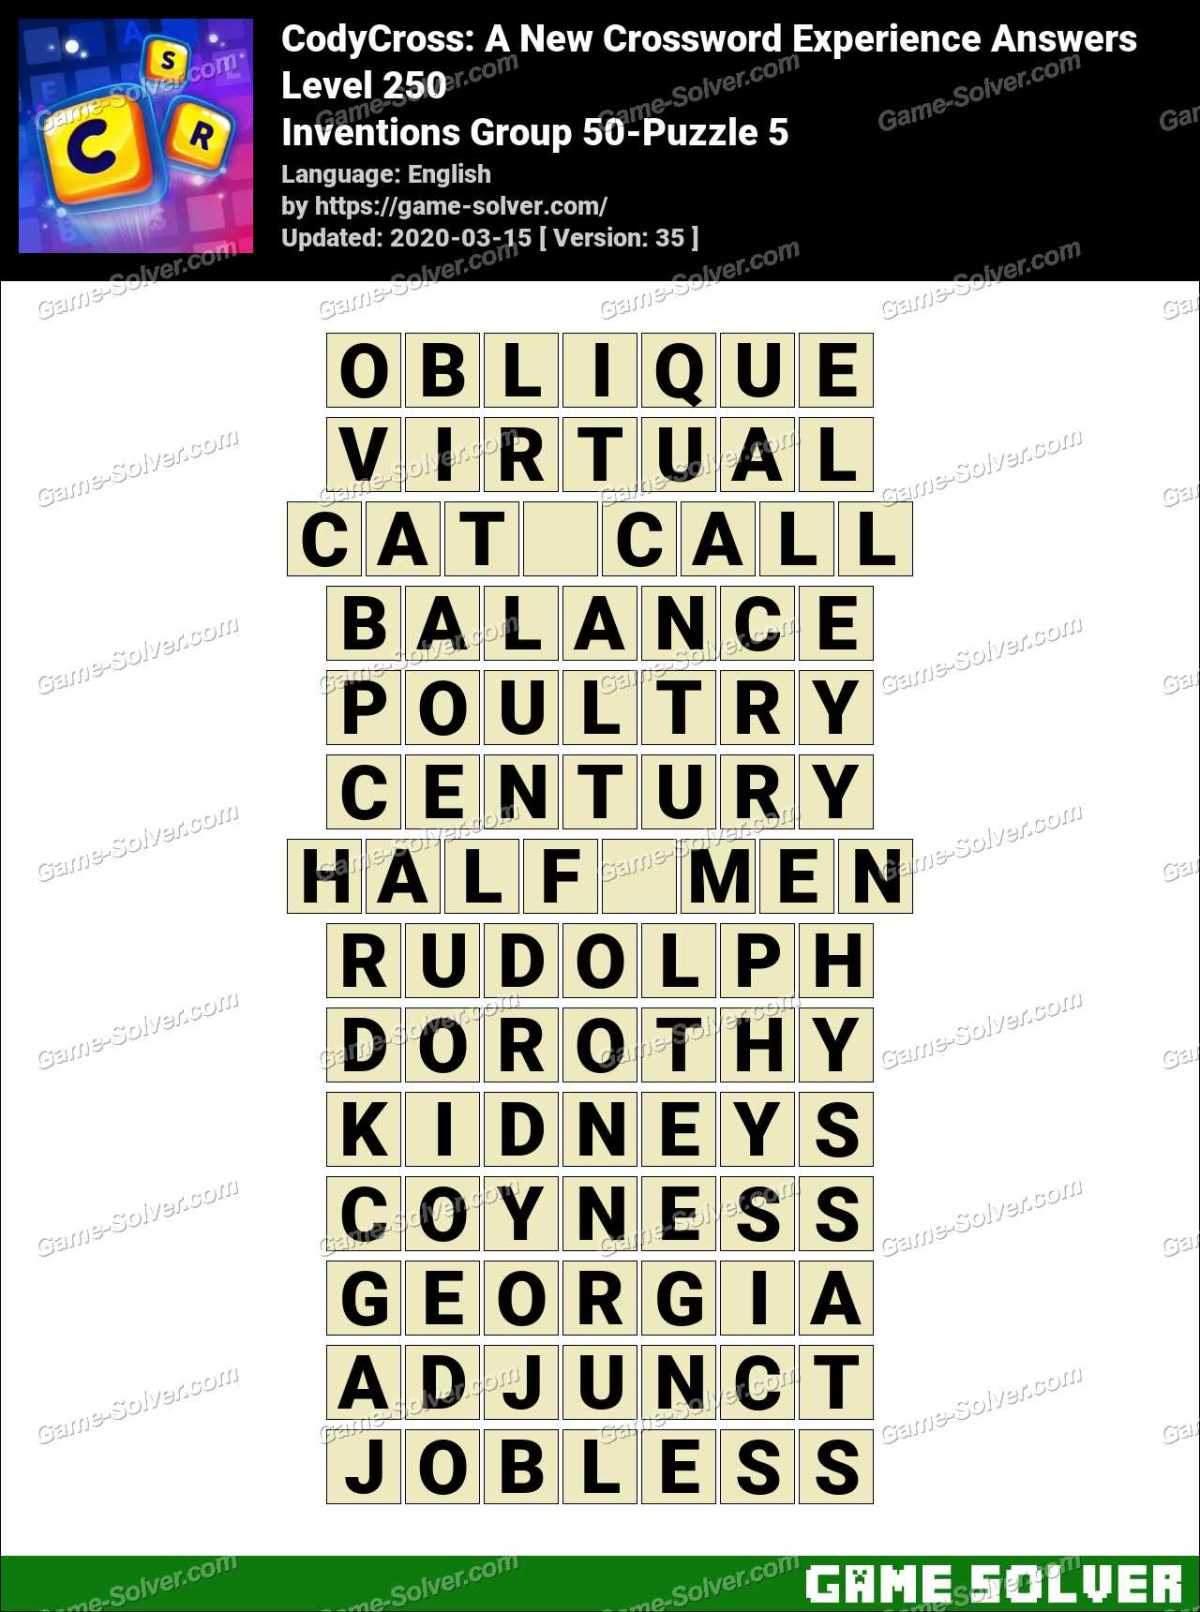 CodyCross Inventions Group 50-Puzzle 5 Answers